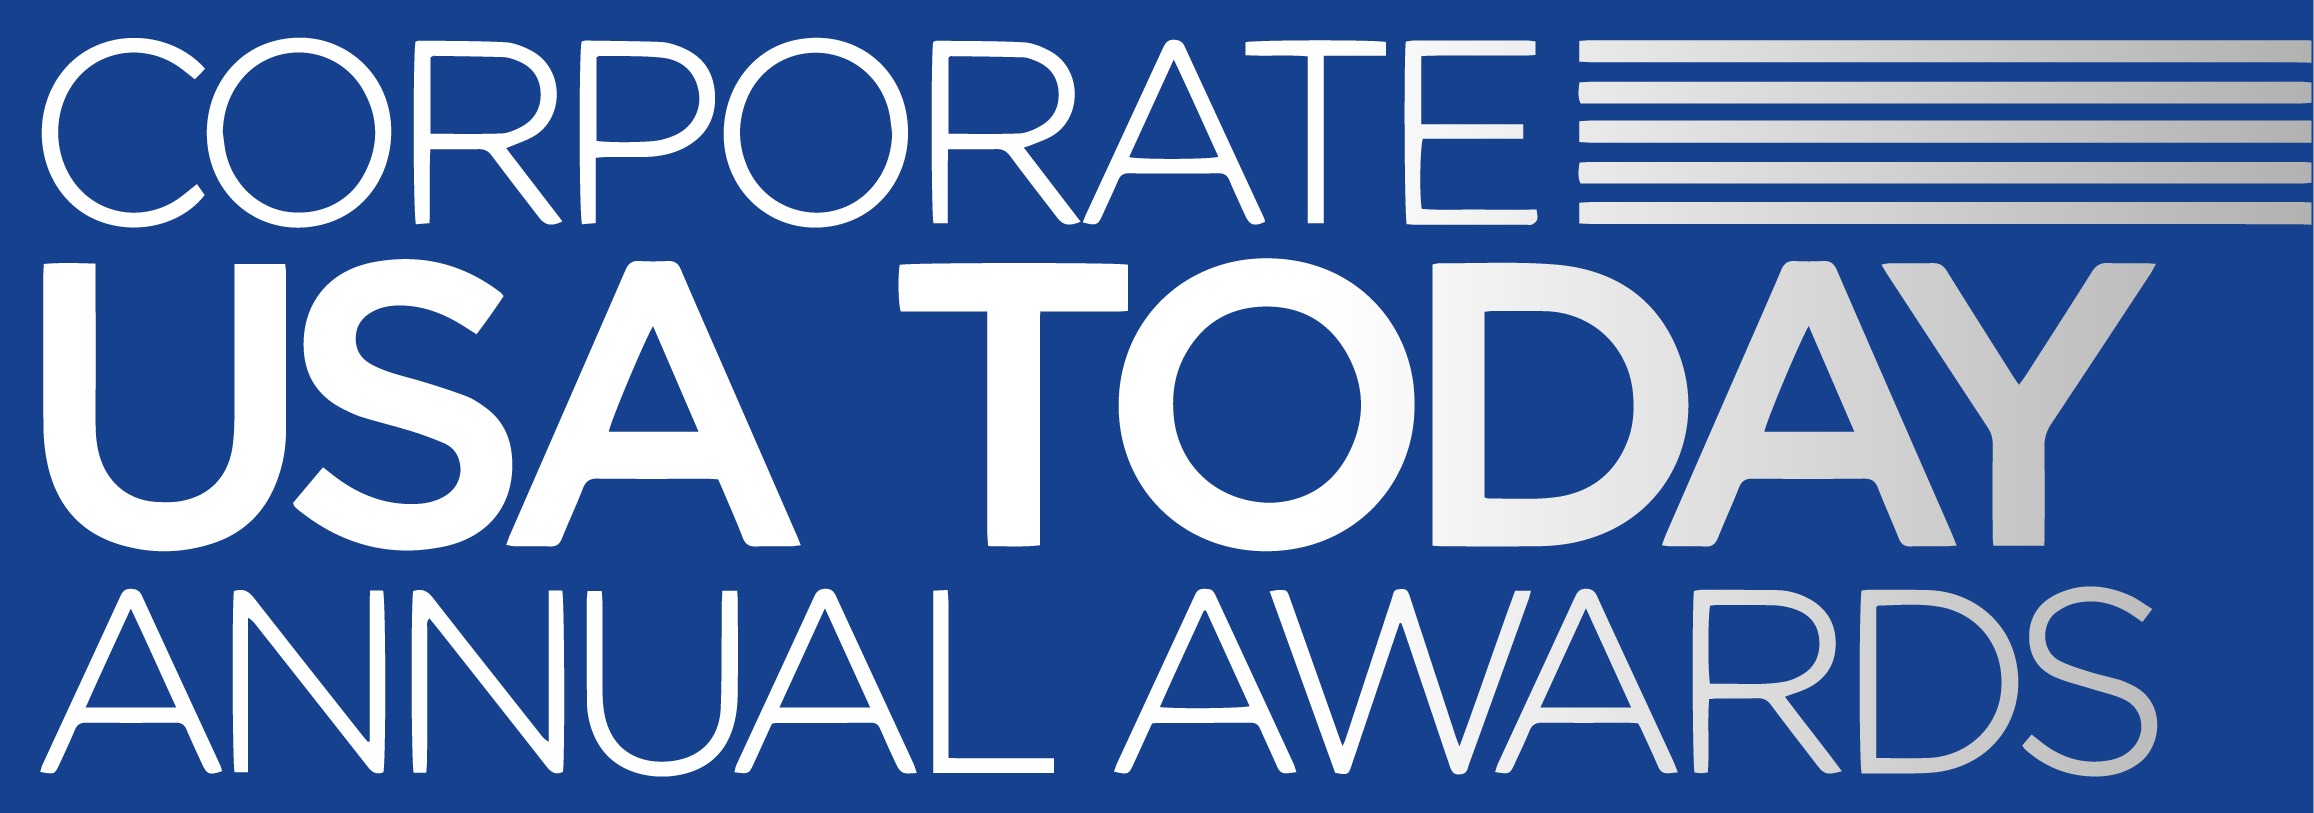 Logo_CorporateUSATodayLaw-Awards2018.png